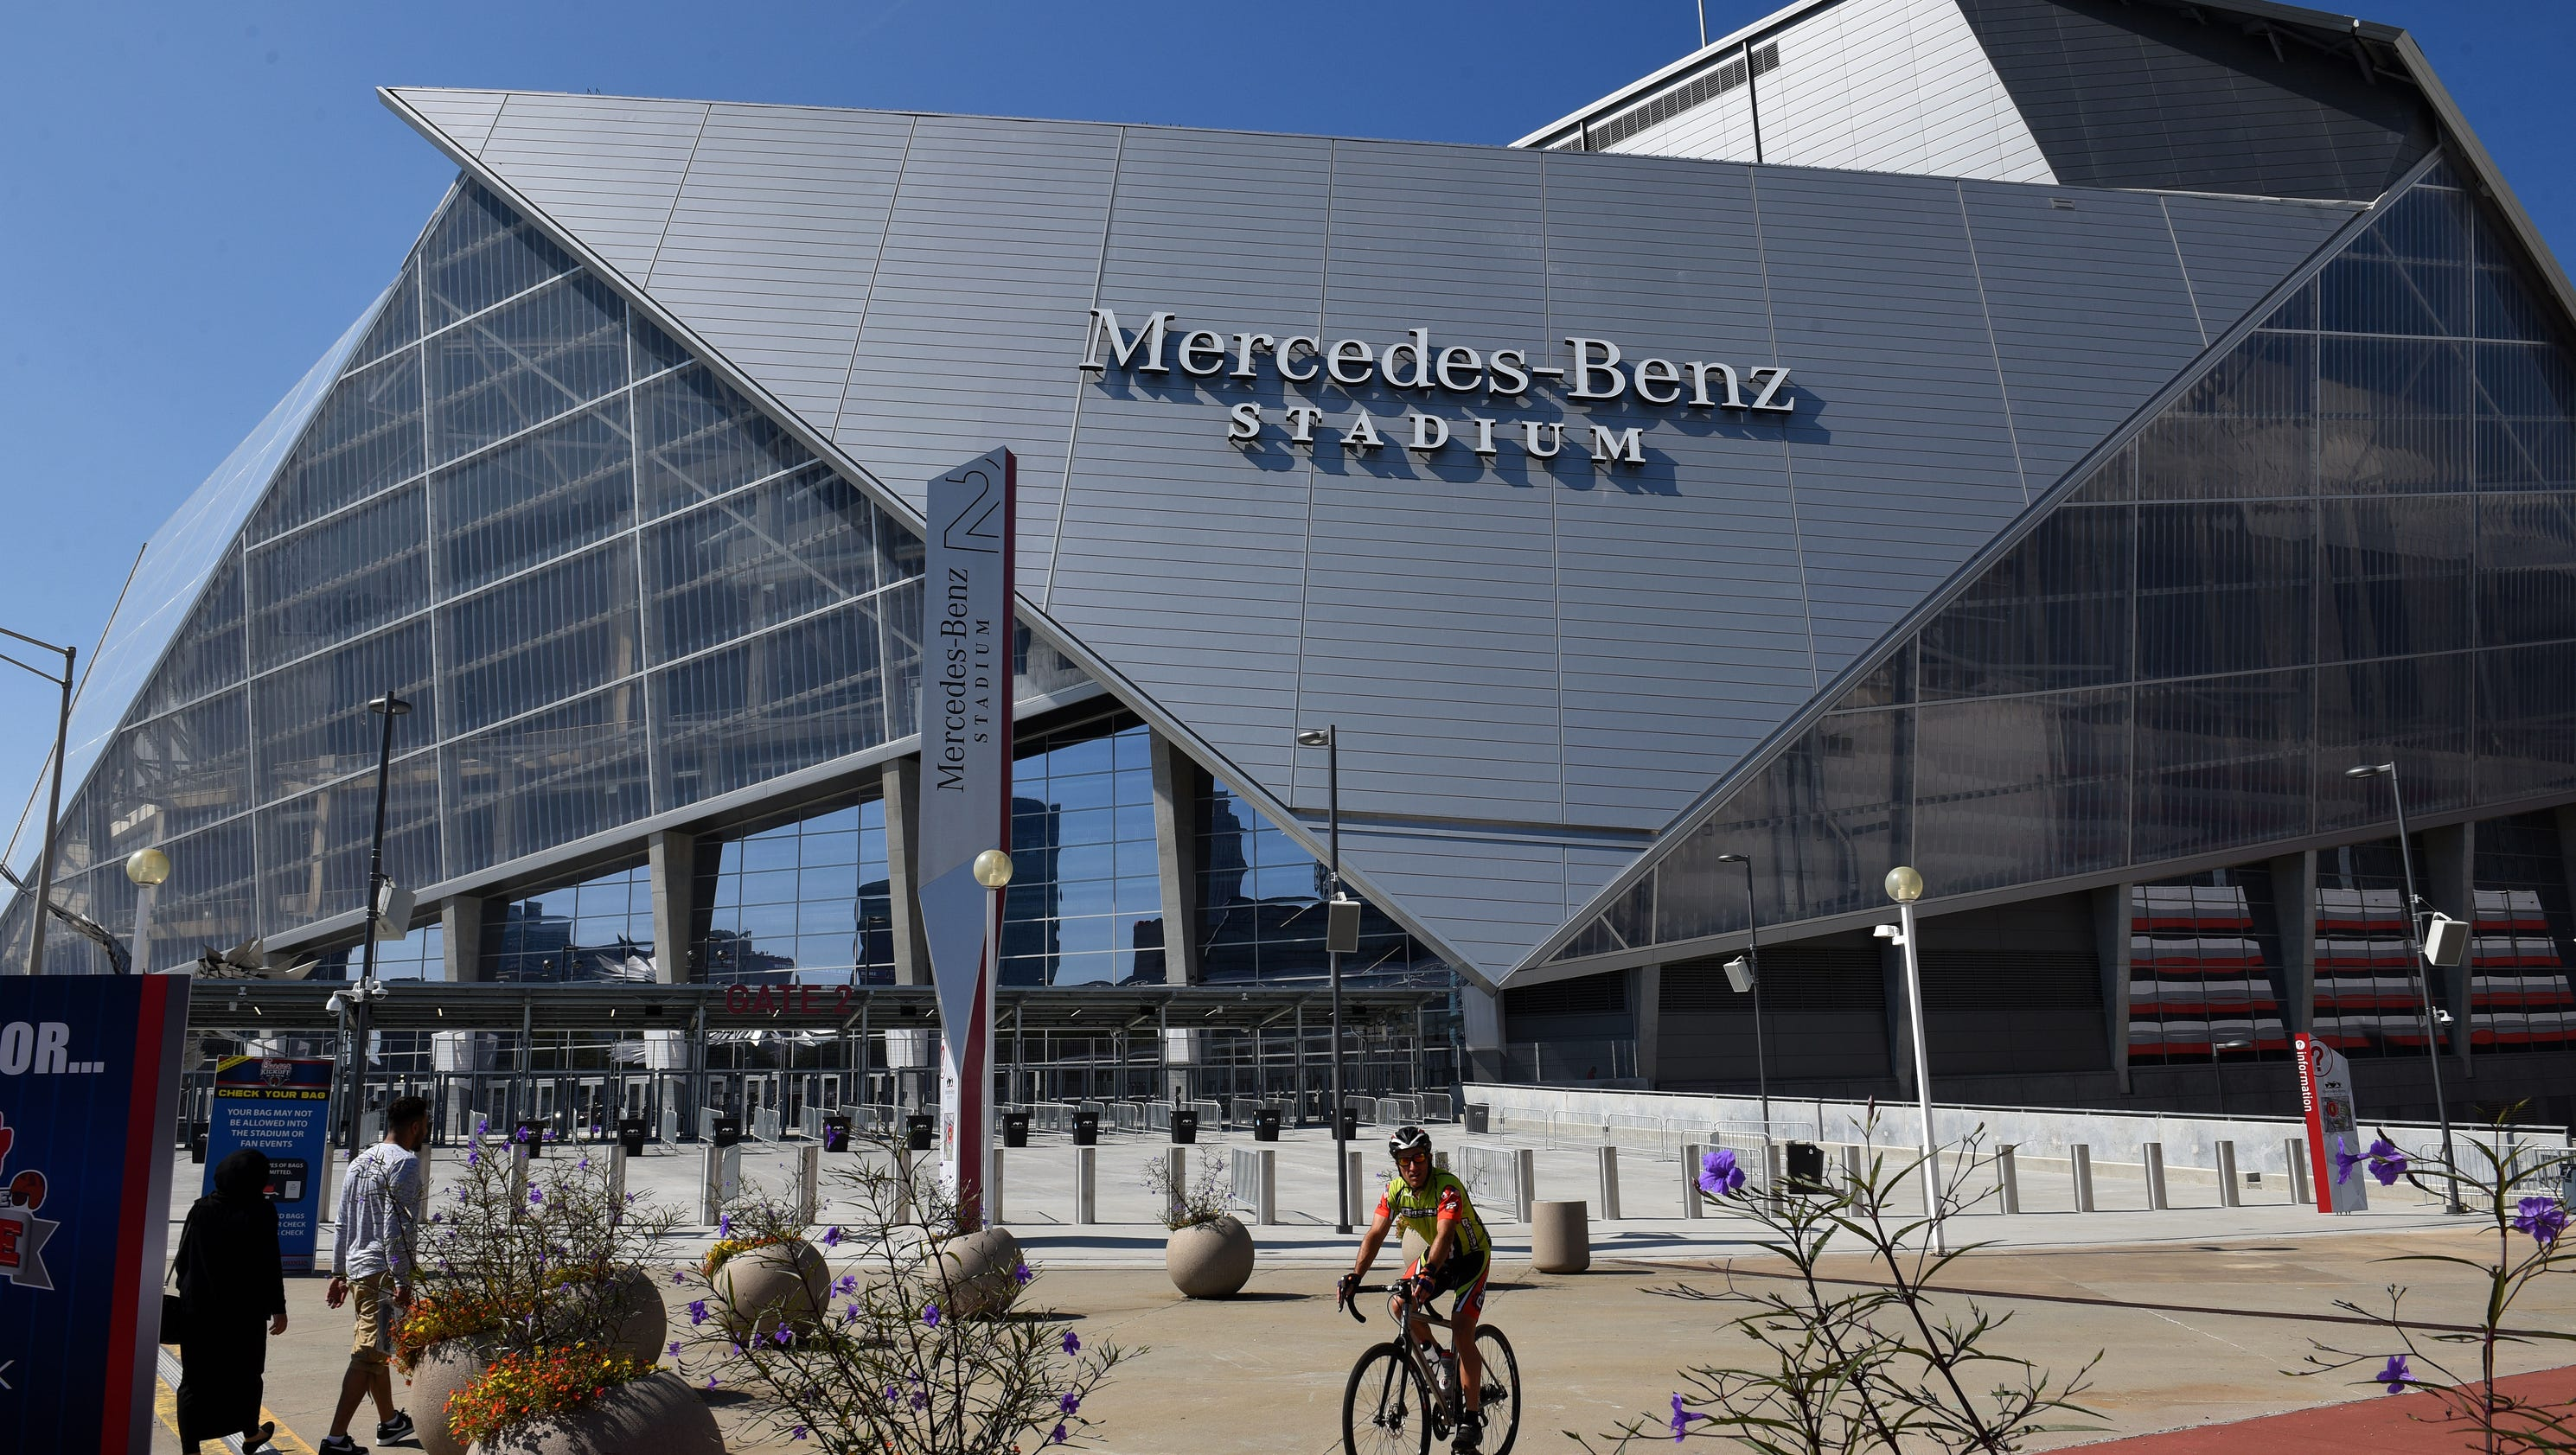 A look at mercedes benz stadium where the volunteers play for Mercedes benz stadium application